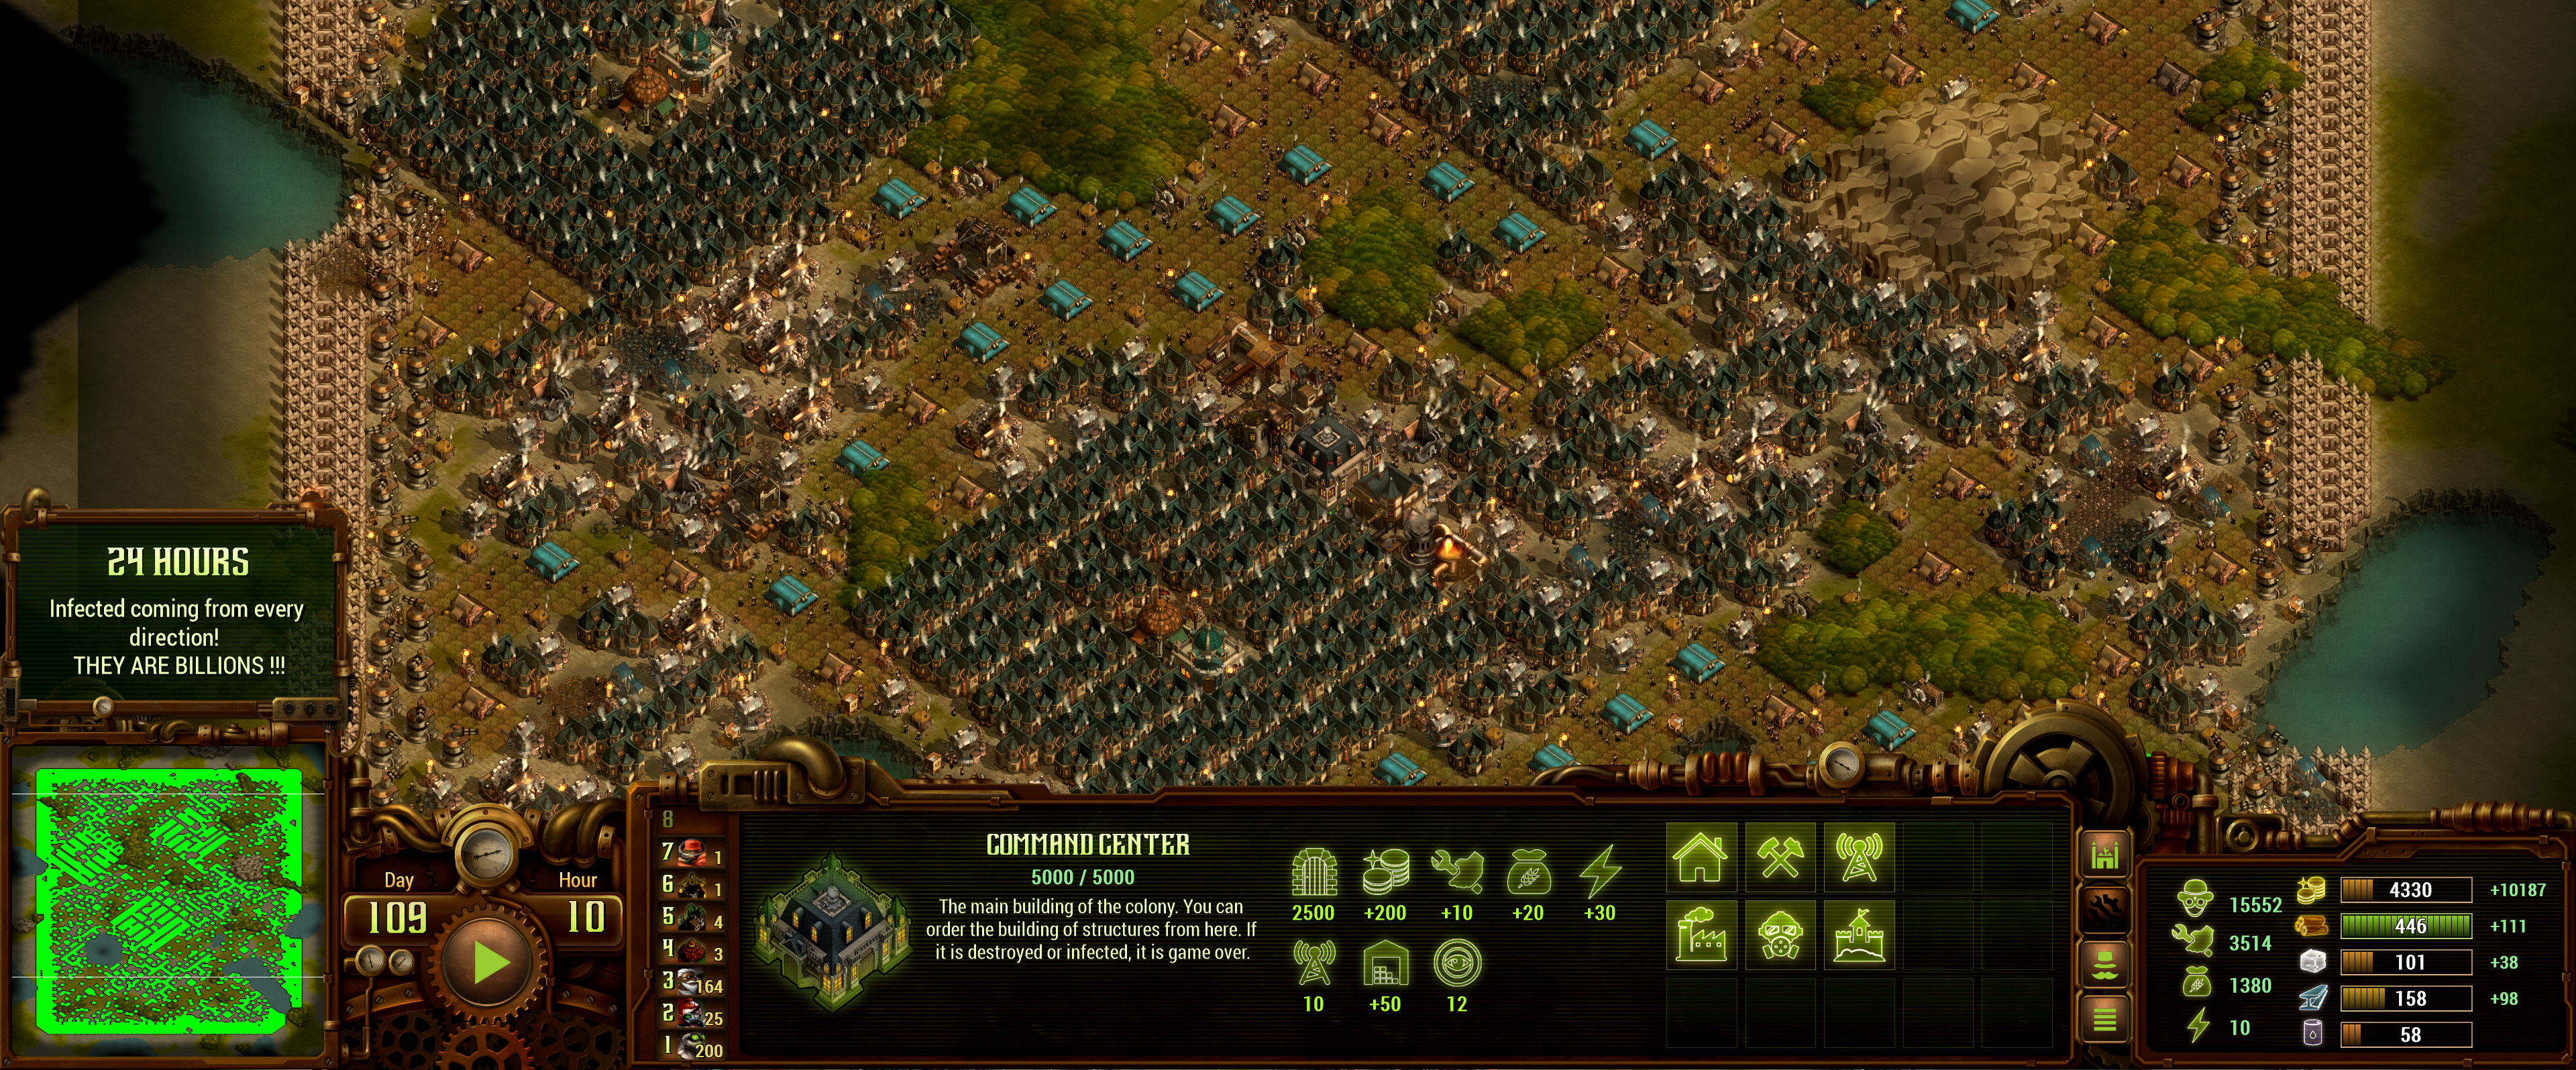 They Are Billions Multi Language Support Spanish Available